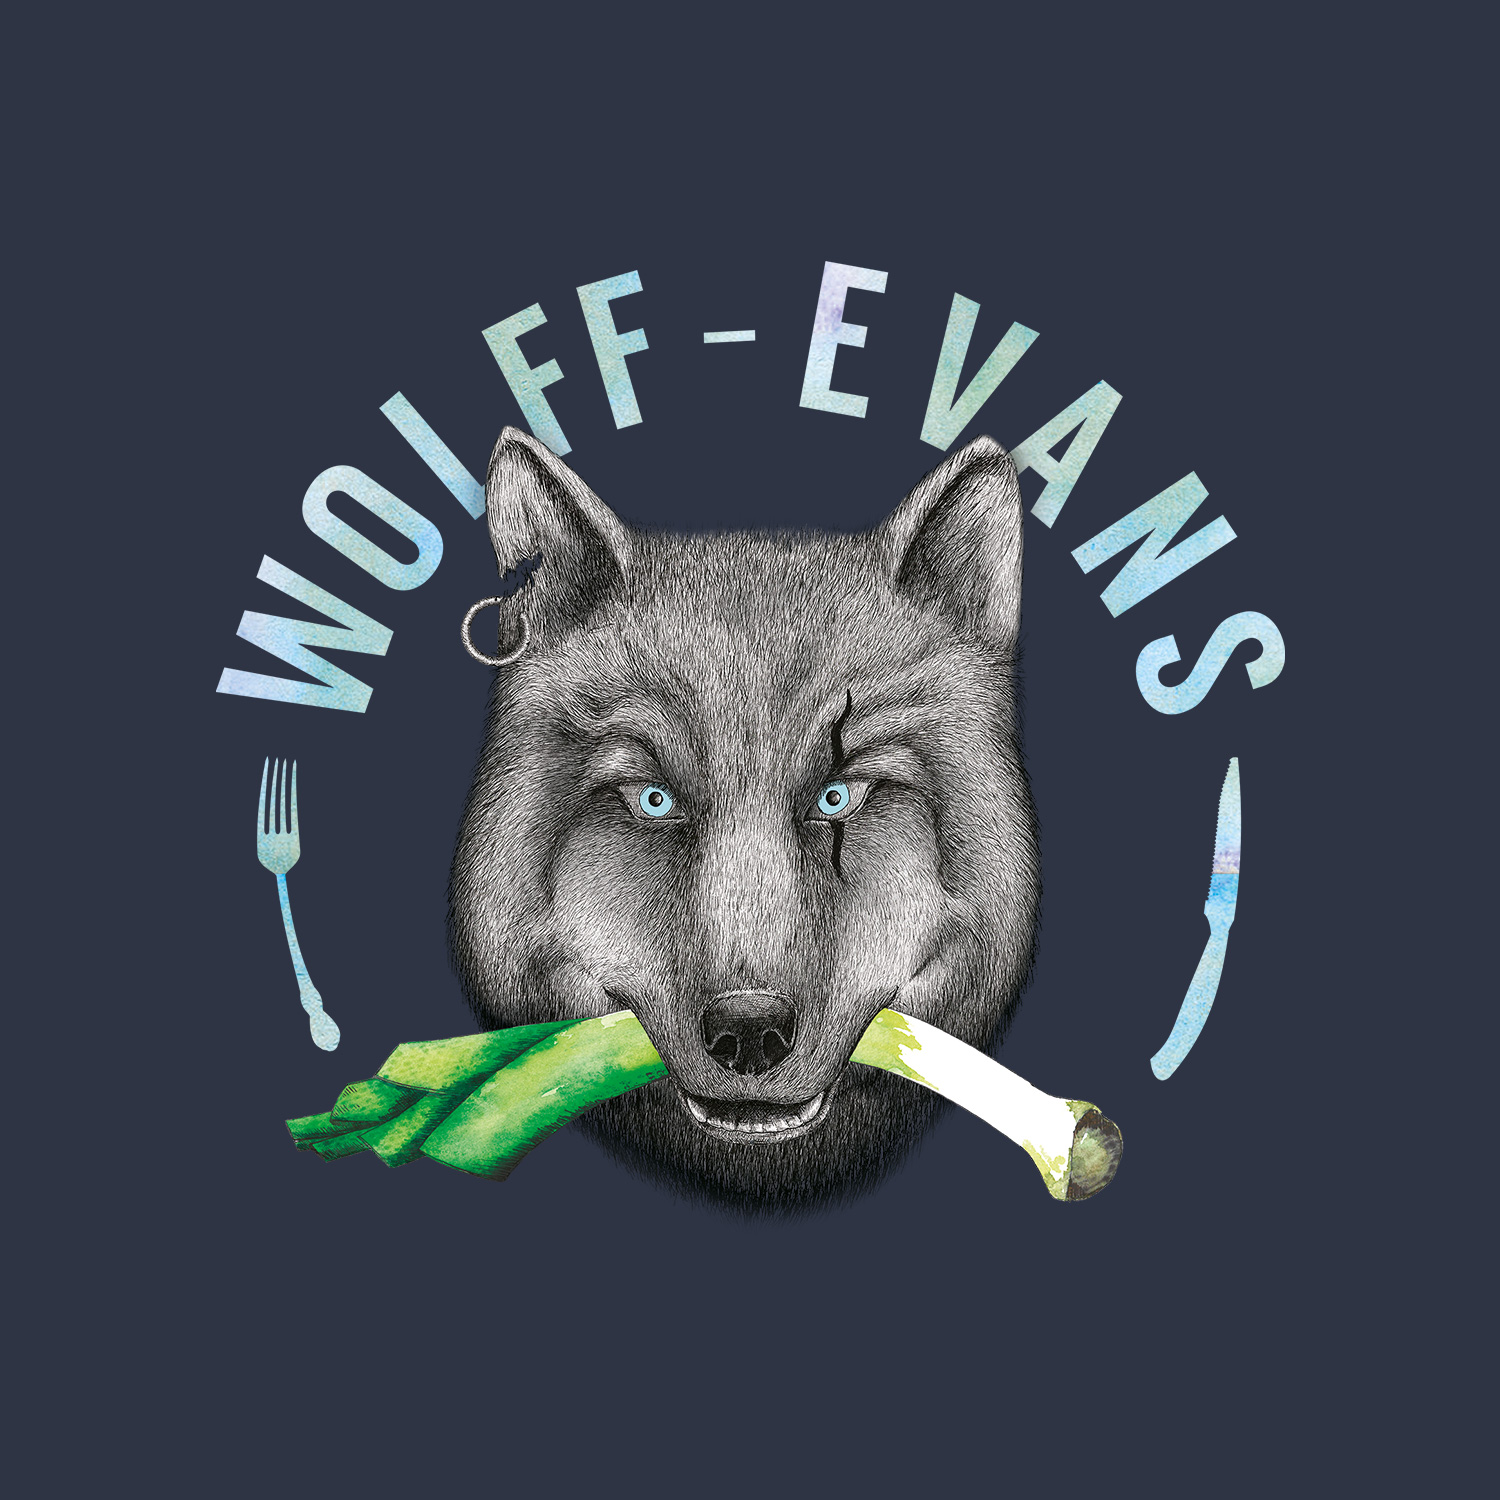 Wolff-Evans finished logo